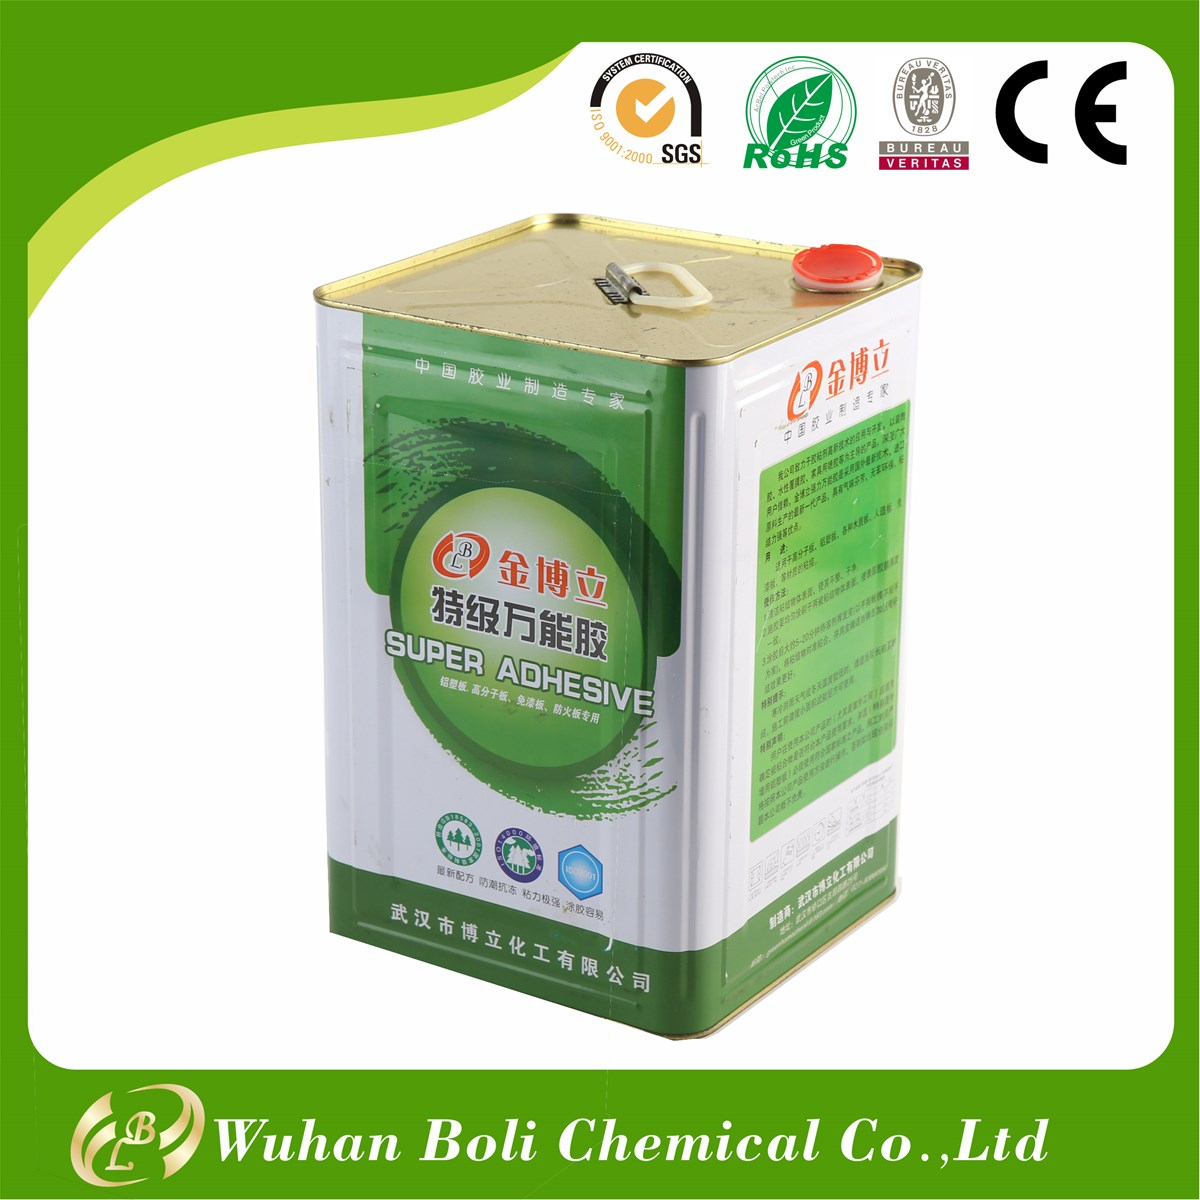 China Supplier Gbl Sbs Contact Super Glue Contact Adhesive For